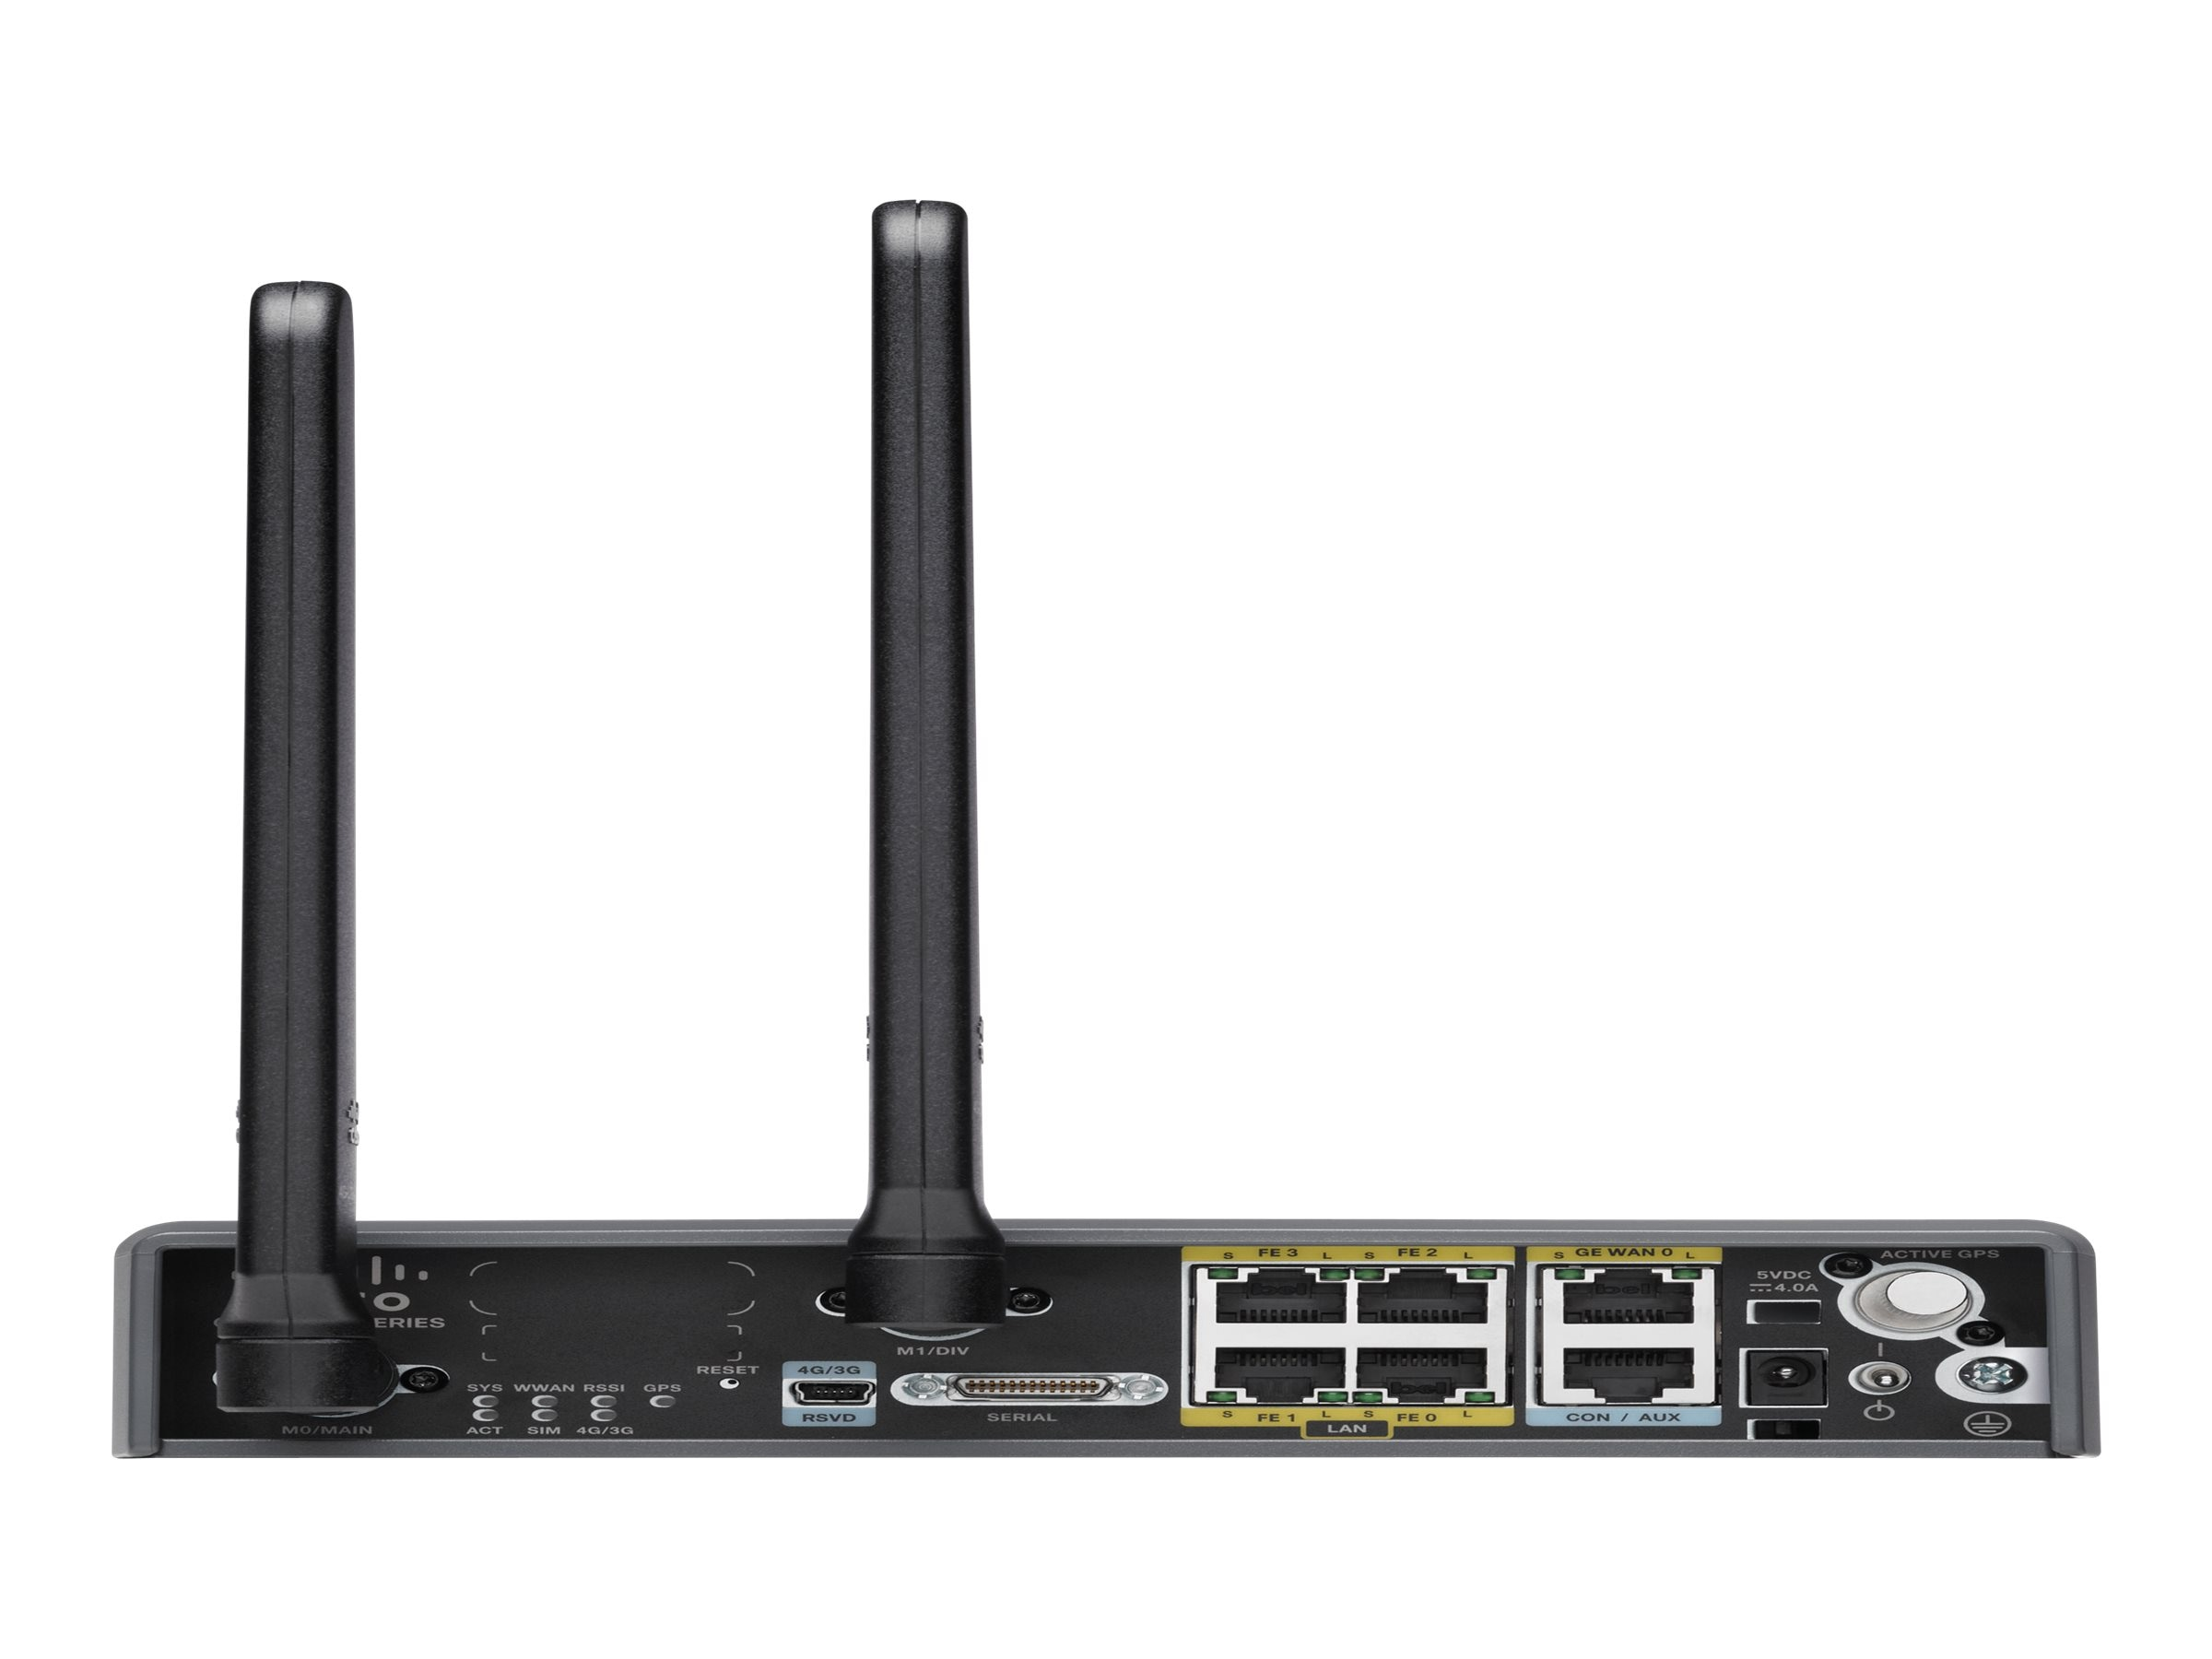 Cisco C819HG-4G-A-K9 Image 1